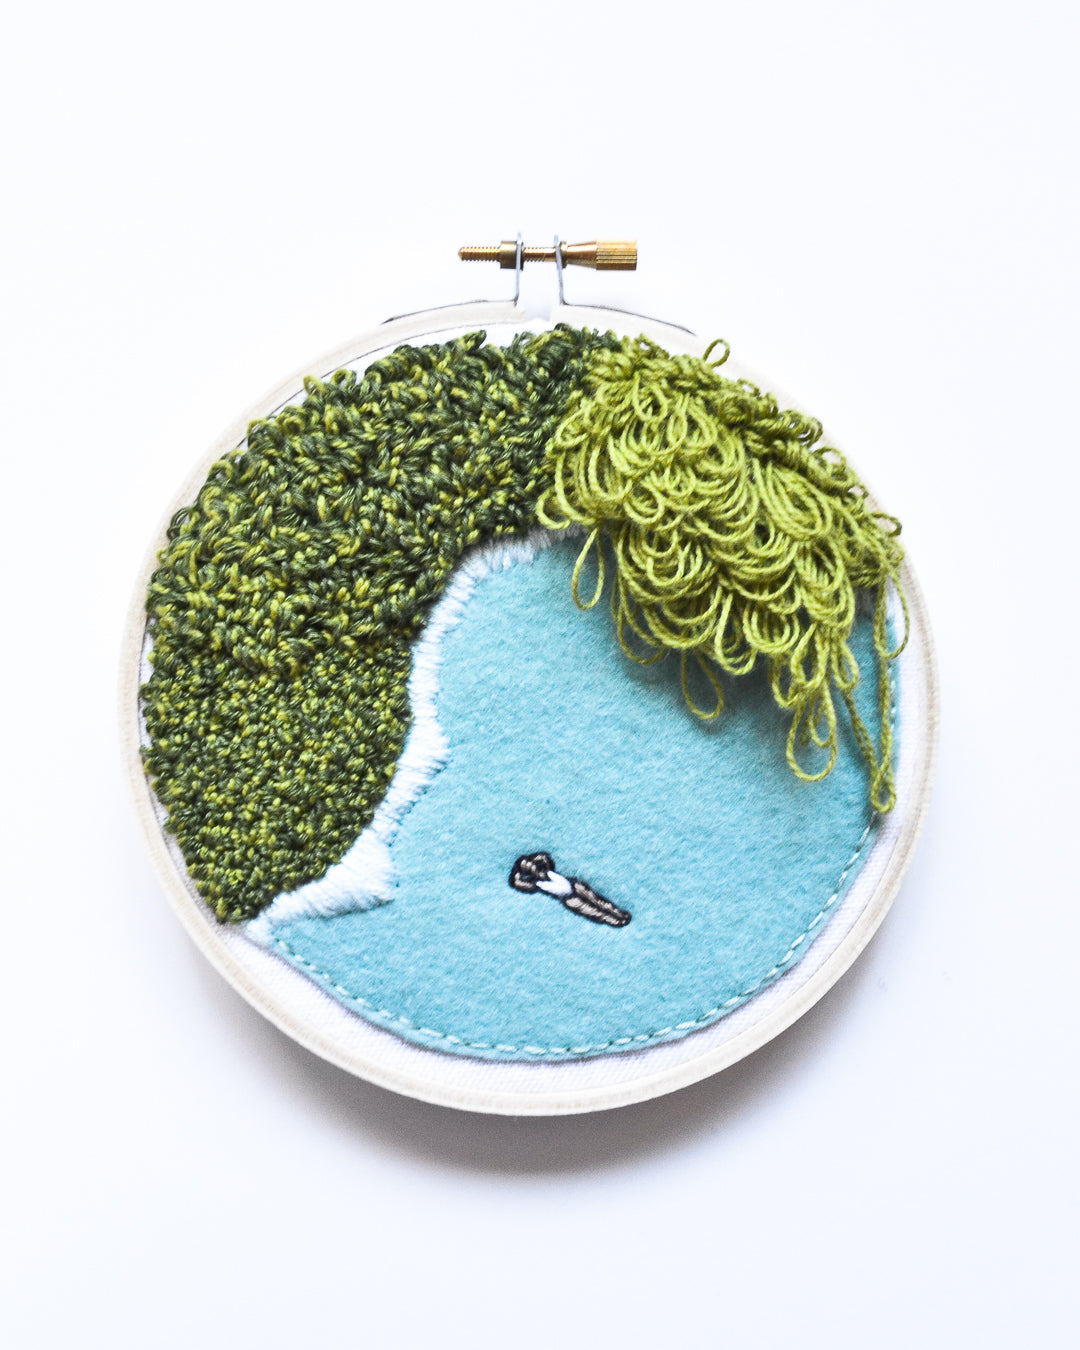 Mini Lagoon No. 18 Original Art - 5 in. hoop